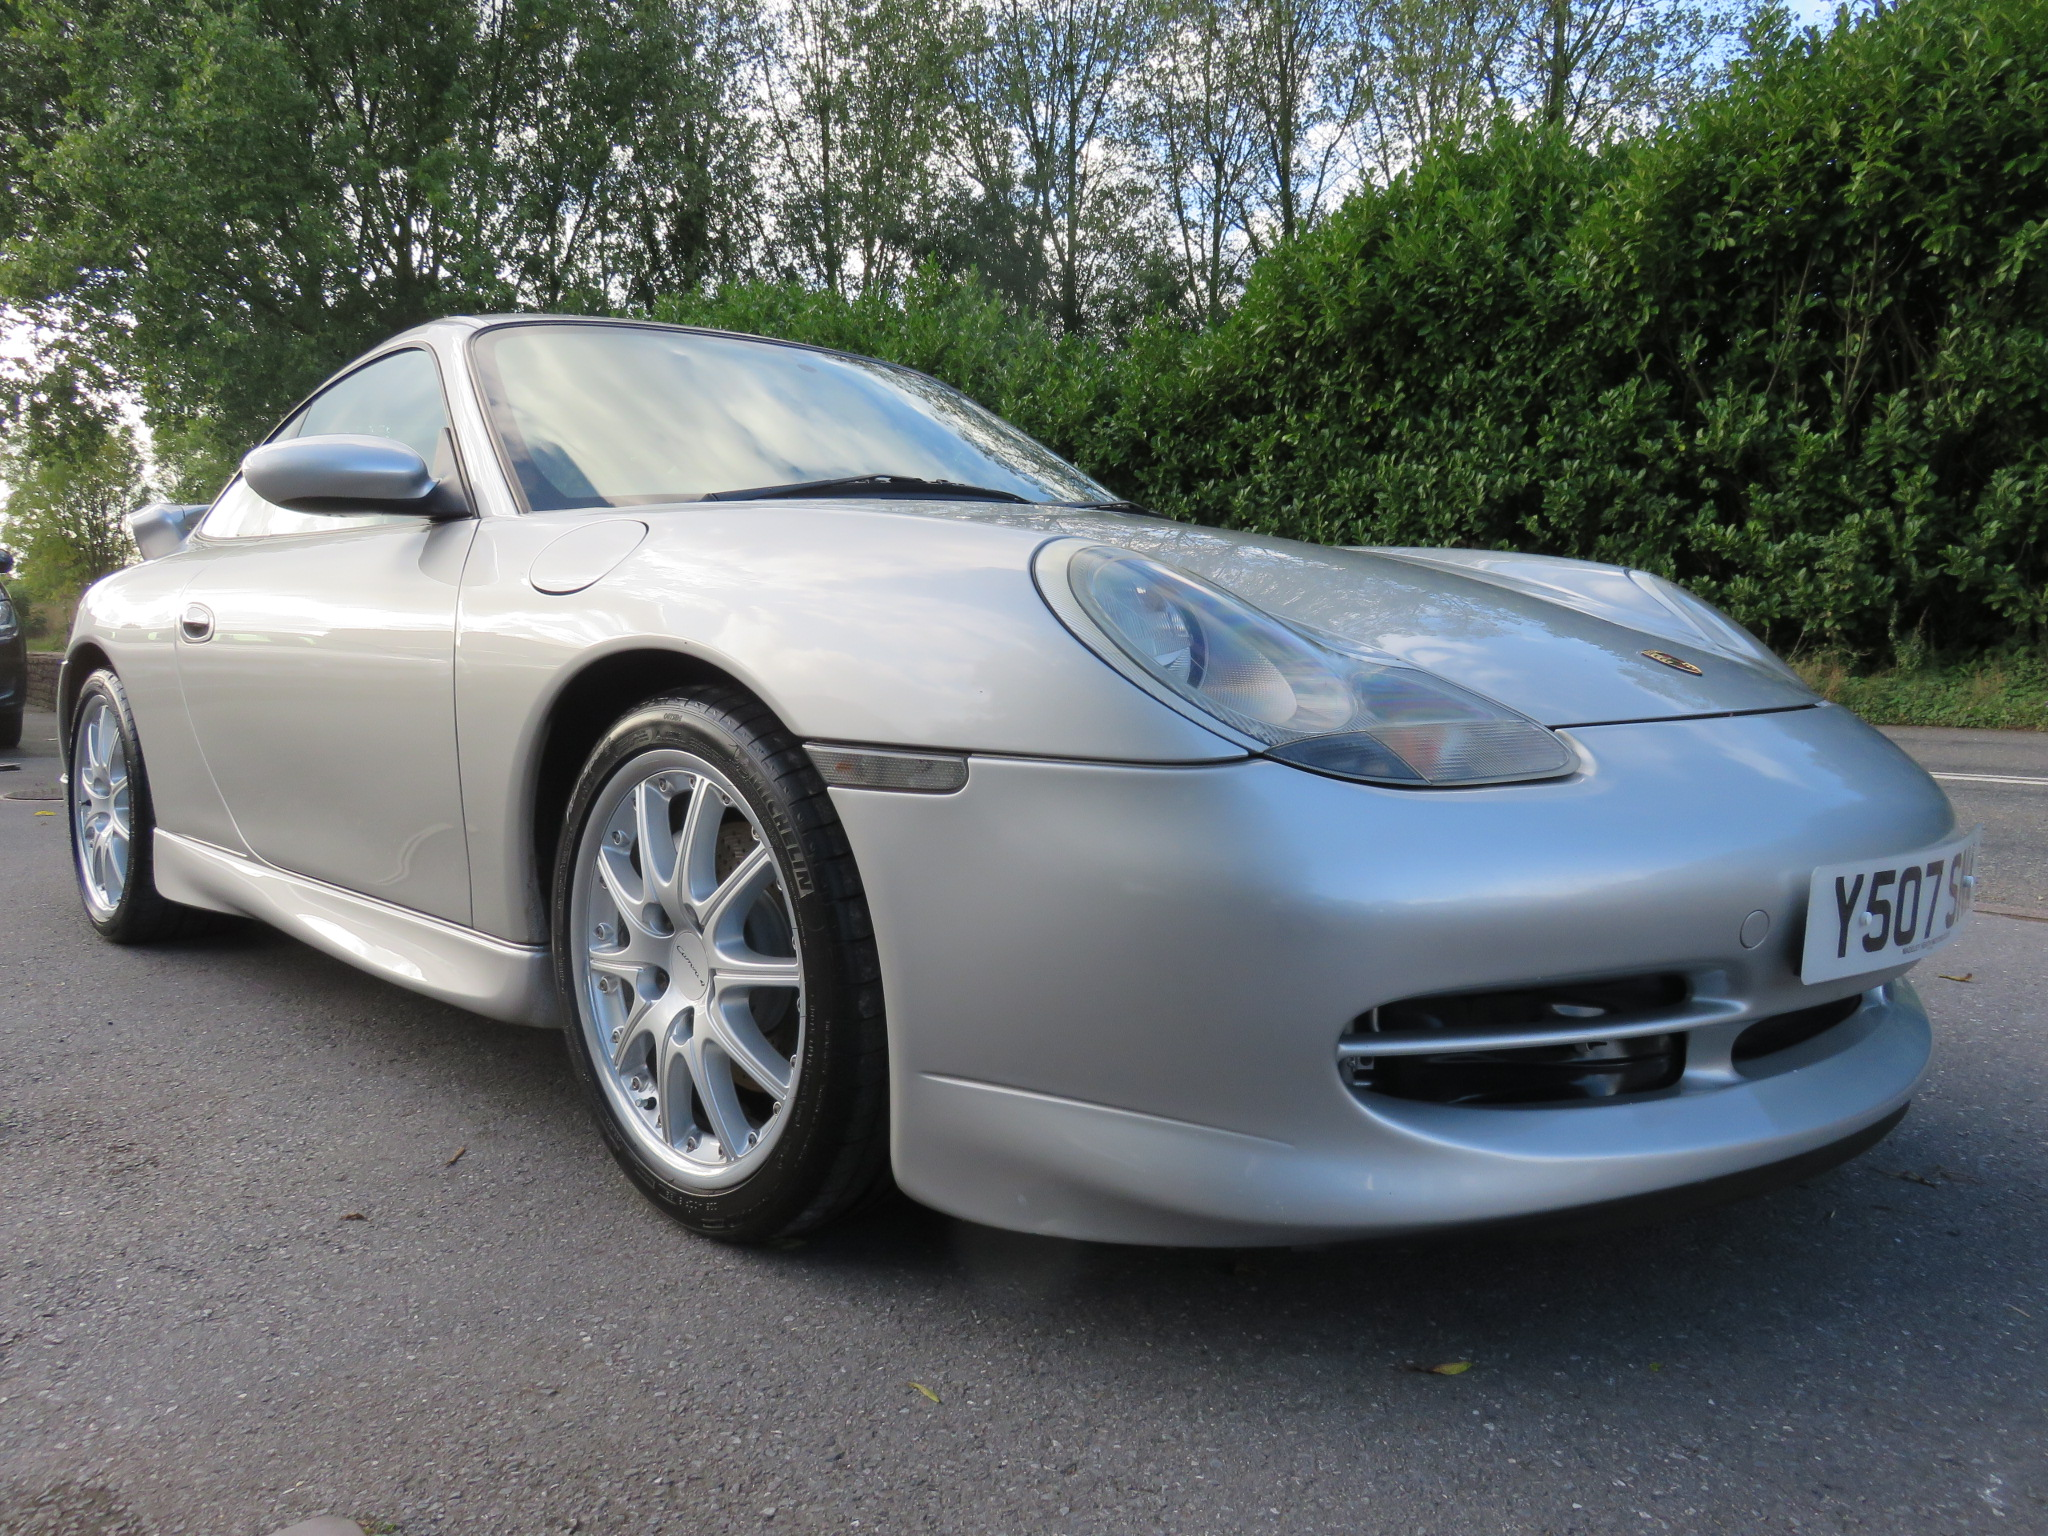 Used Porsche 911 Carrera 4 Tiptronic  Coupe car for sale in Exeter, Devon